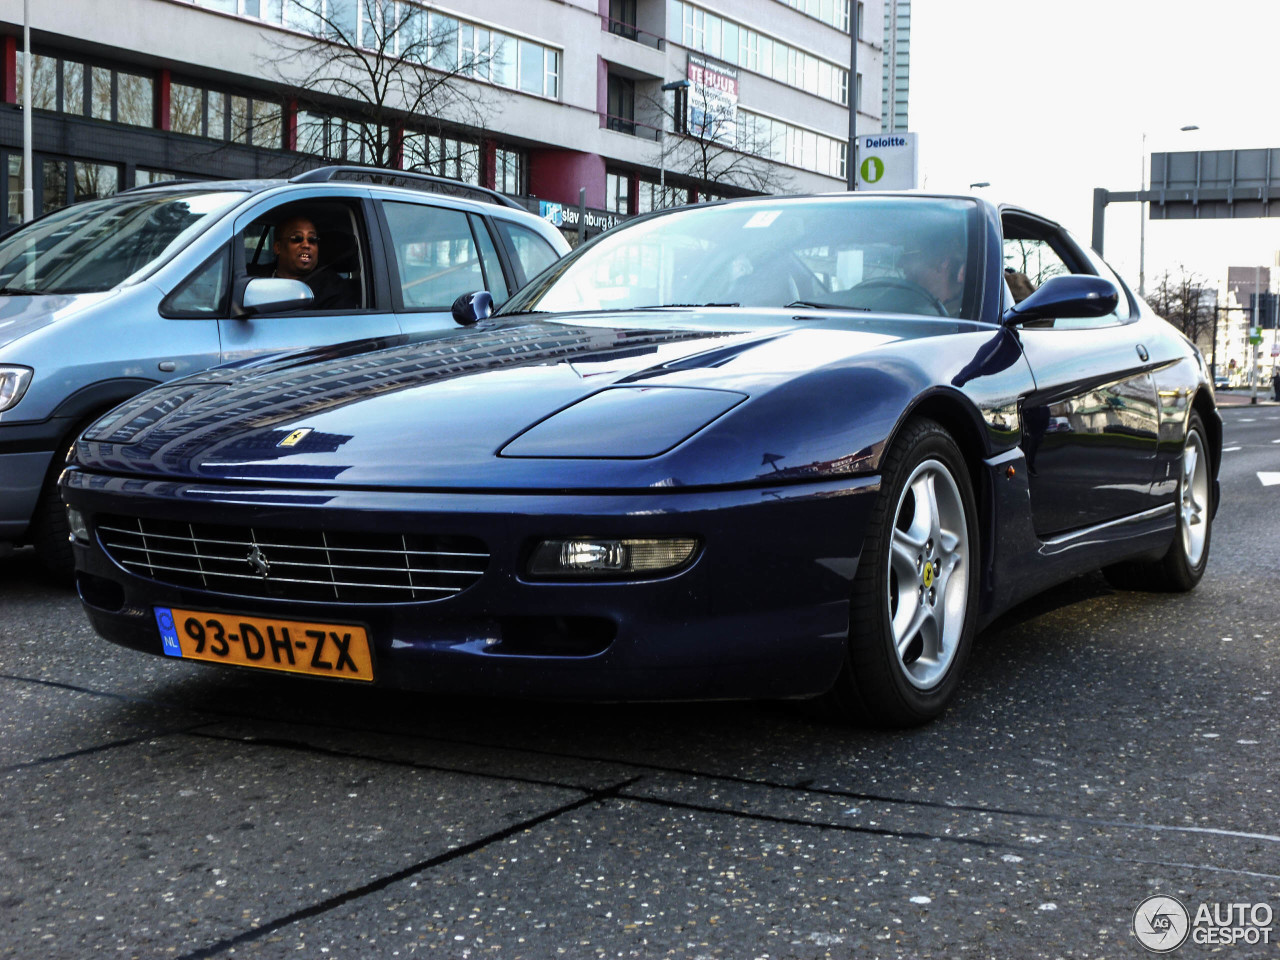 ferrari 456 gt 24 march 2014 autogespot. Black Bedroom Furniture Sets. Home Design Ideas